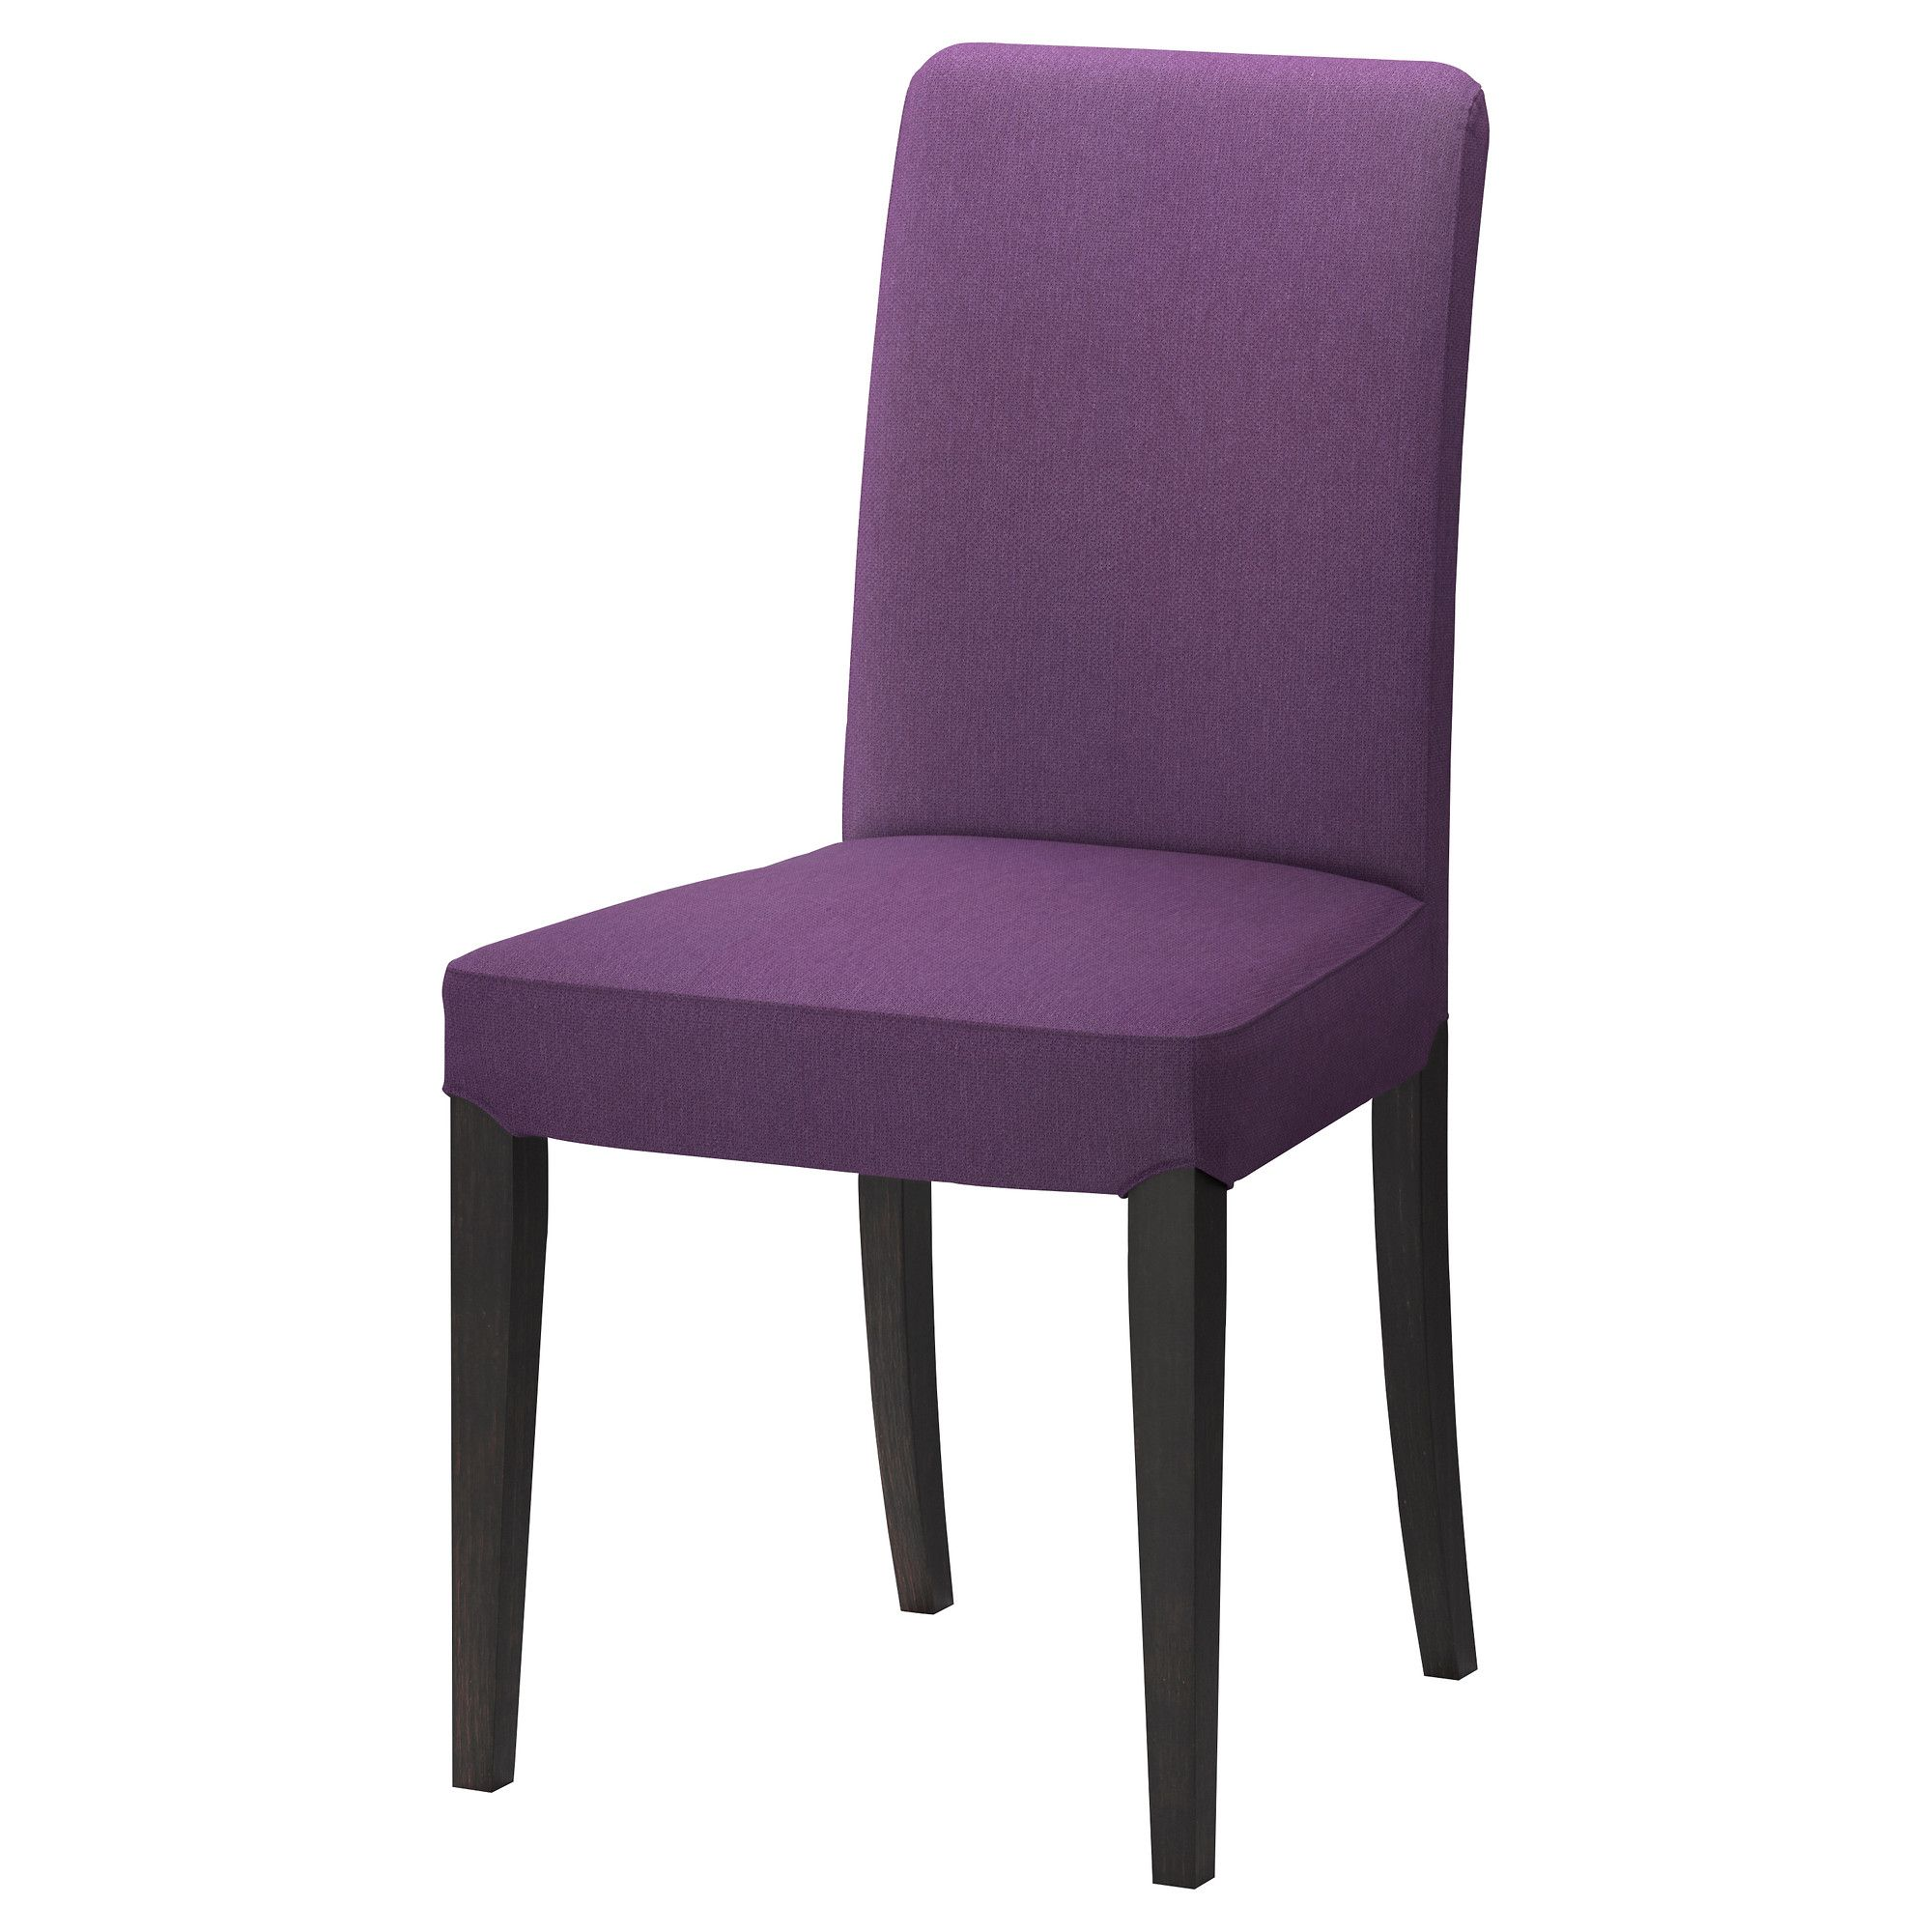 henriksdal chair dansbo lilac brown black ikea bring on the rainbow dining chairs ikea. Black Bedroom Furniture Sets. Home Design Ideas